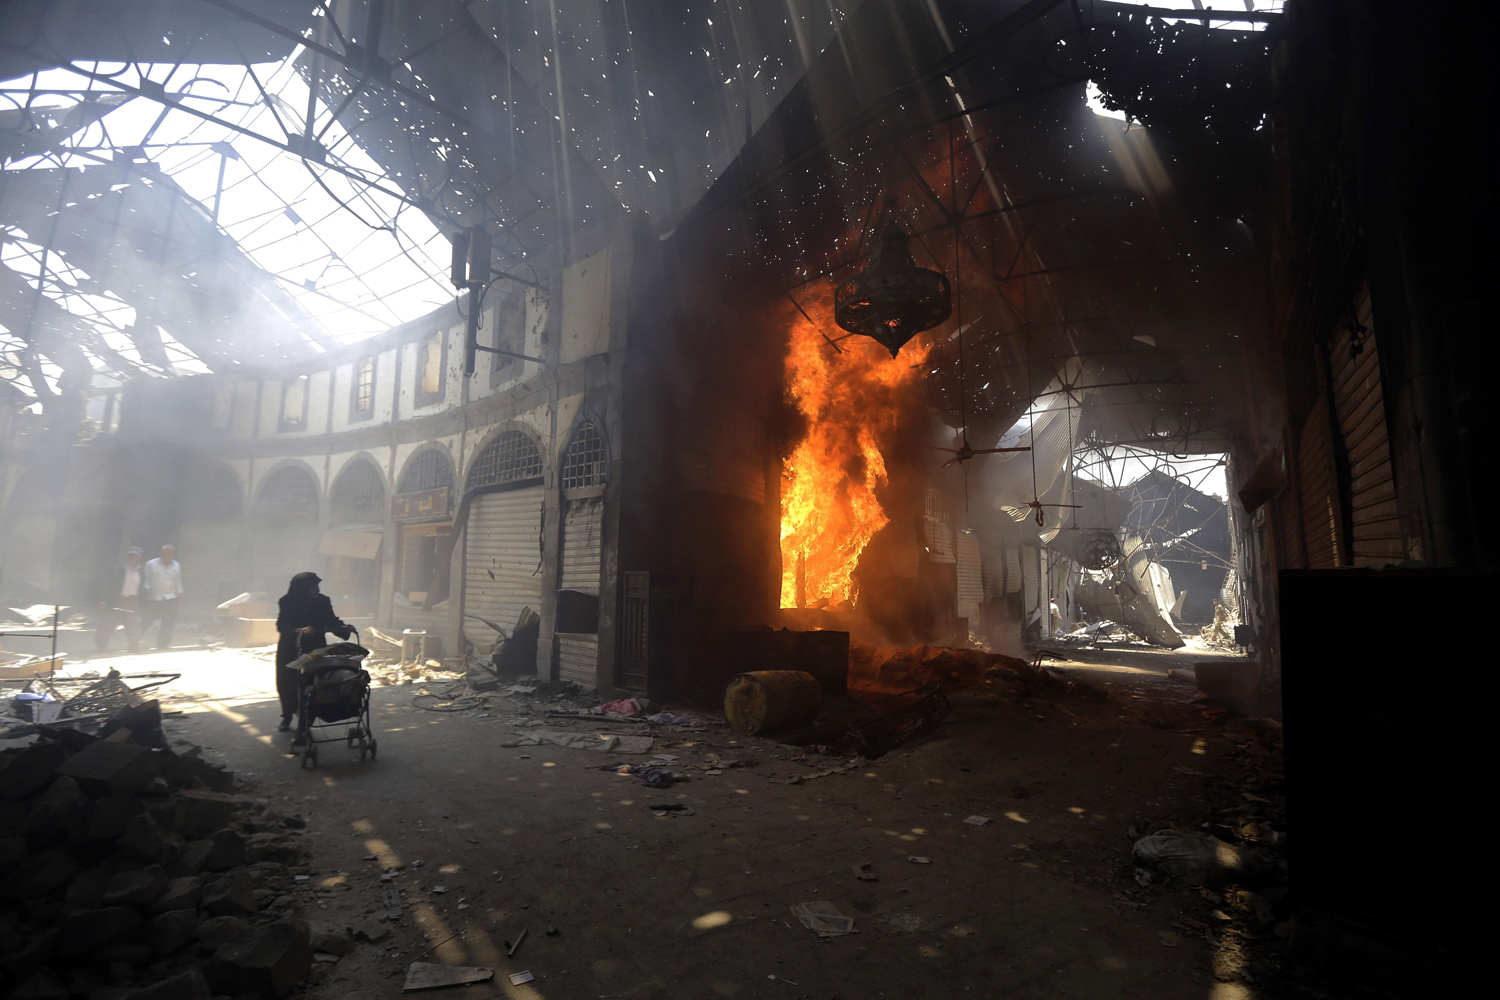 May 12, 2014. A woman walks past a burning shop in the Maskuf market in the Old City of Homs, north of Damascus.